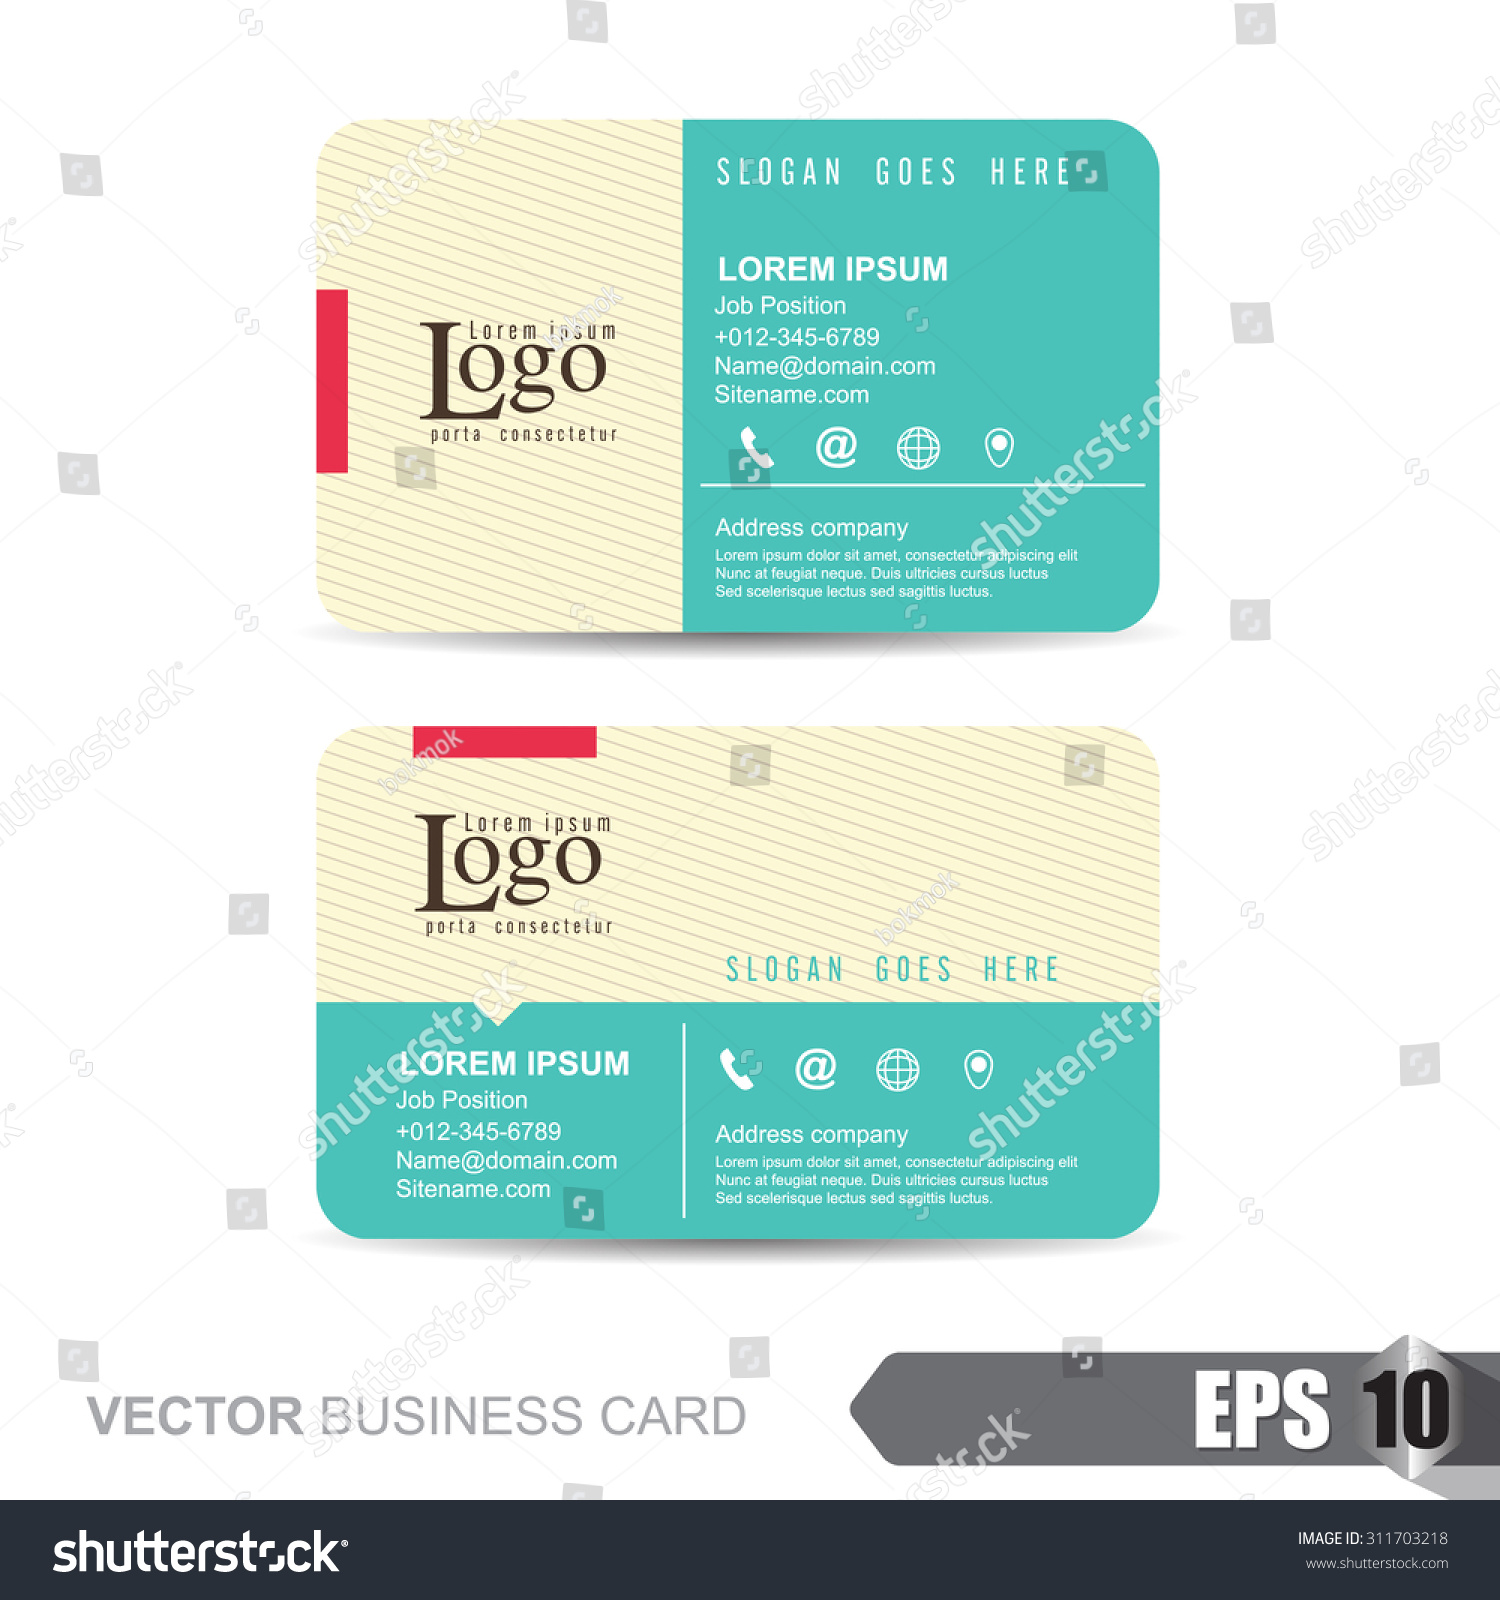 Vector Illustration Business Card Template With Clean And